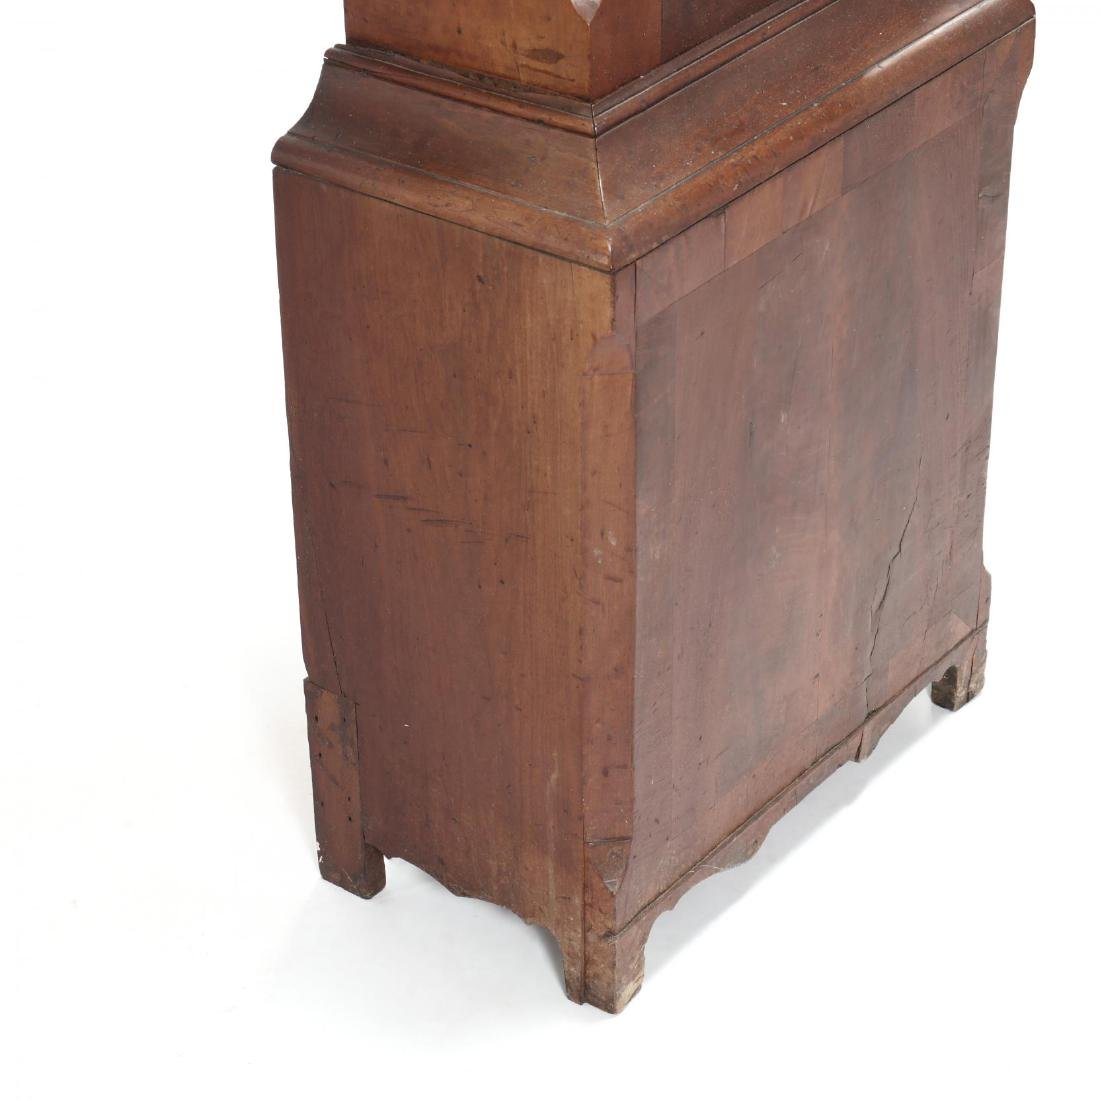 Southern Federal Tall Case Cherry Clock - 6